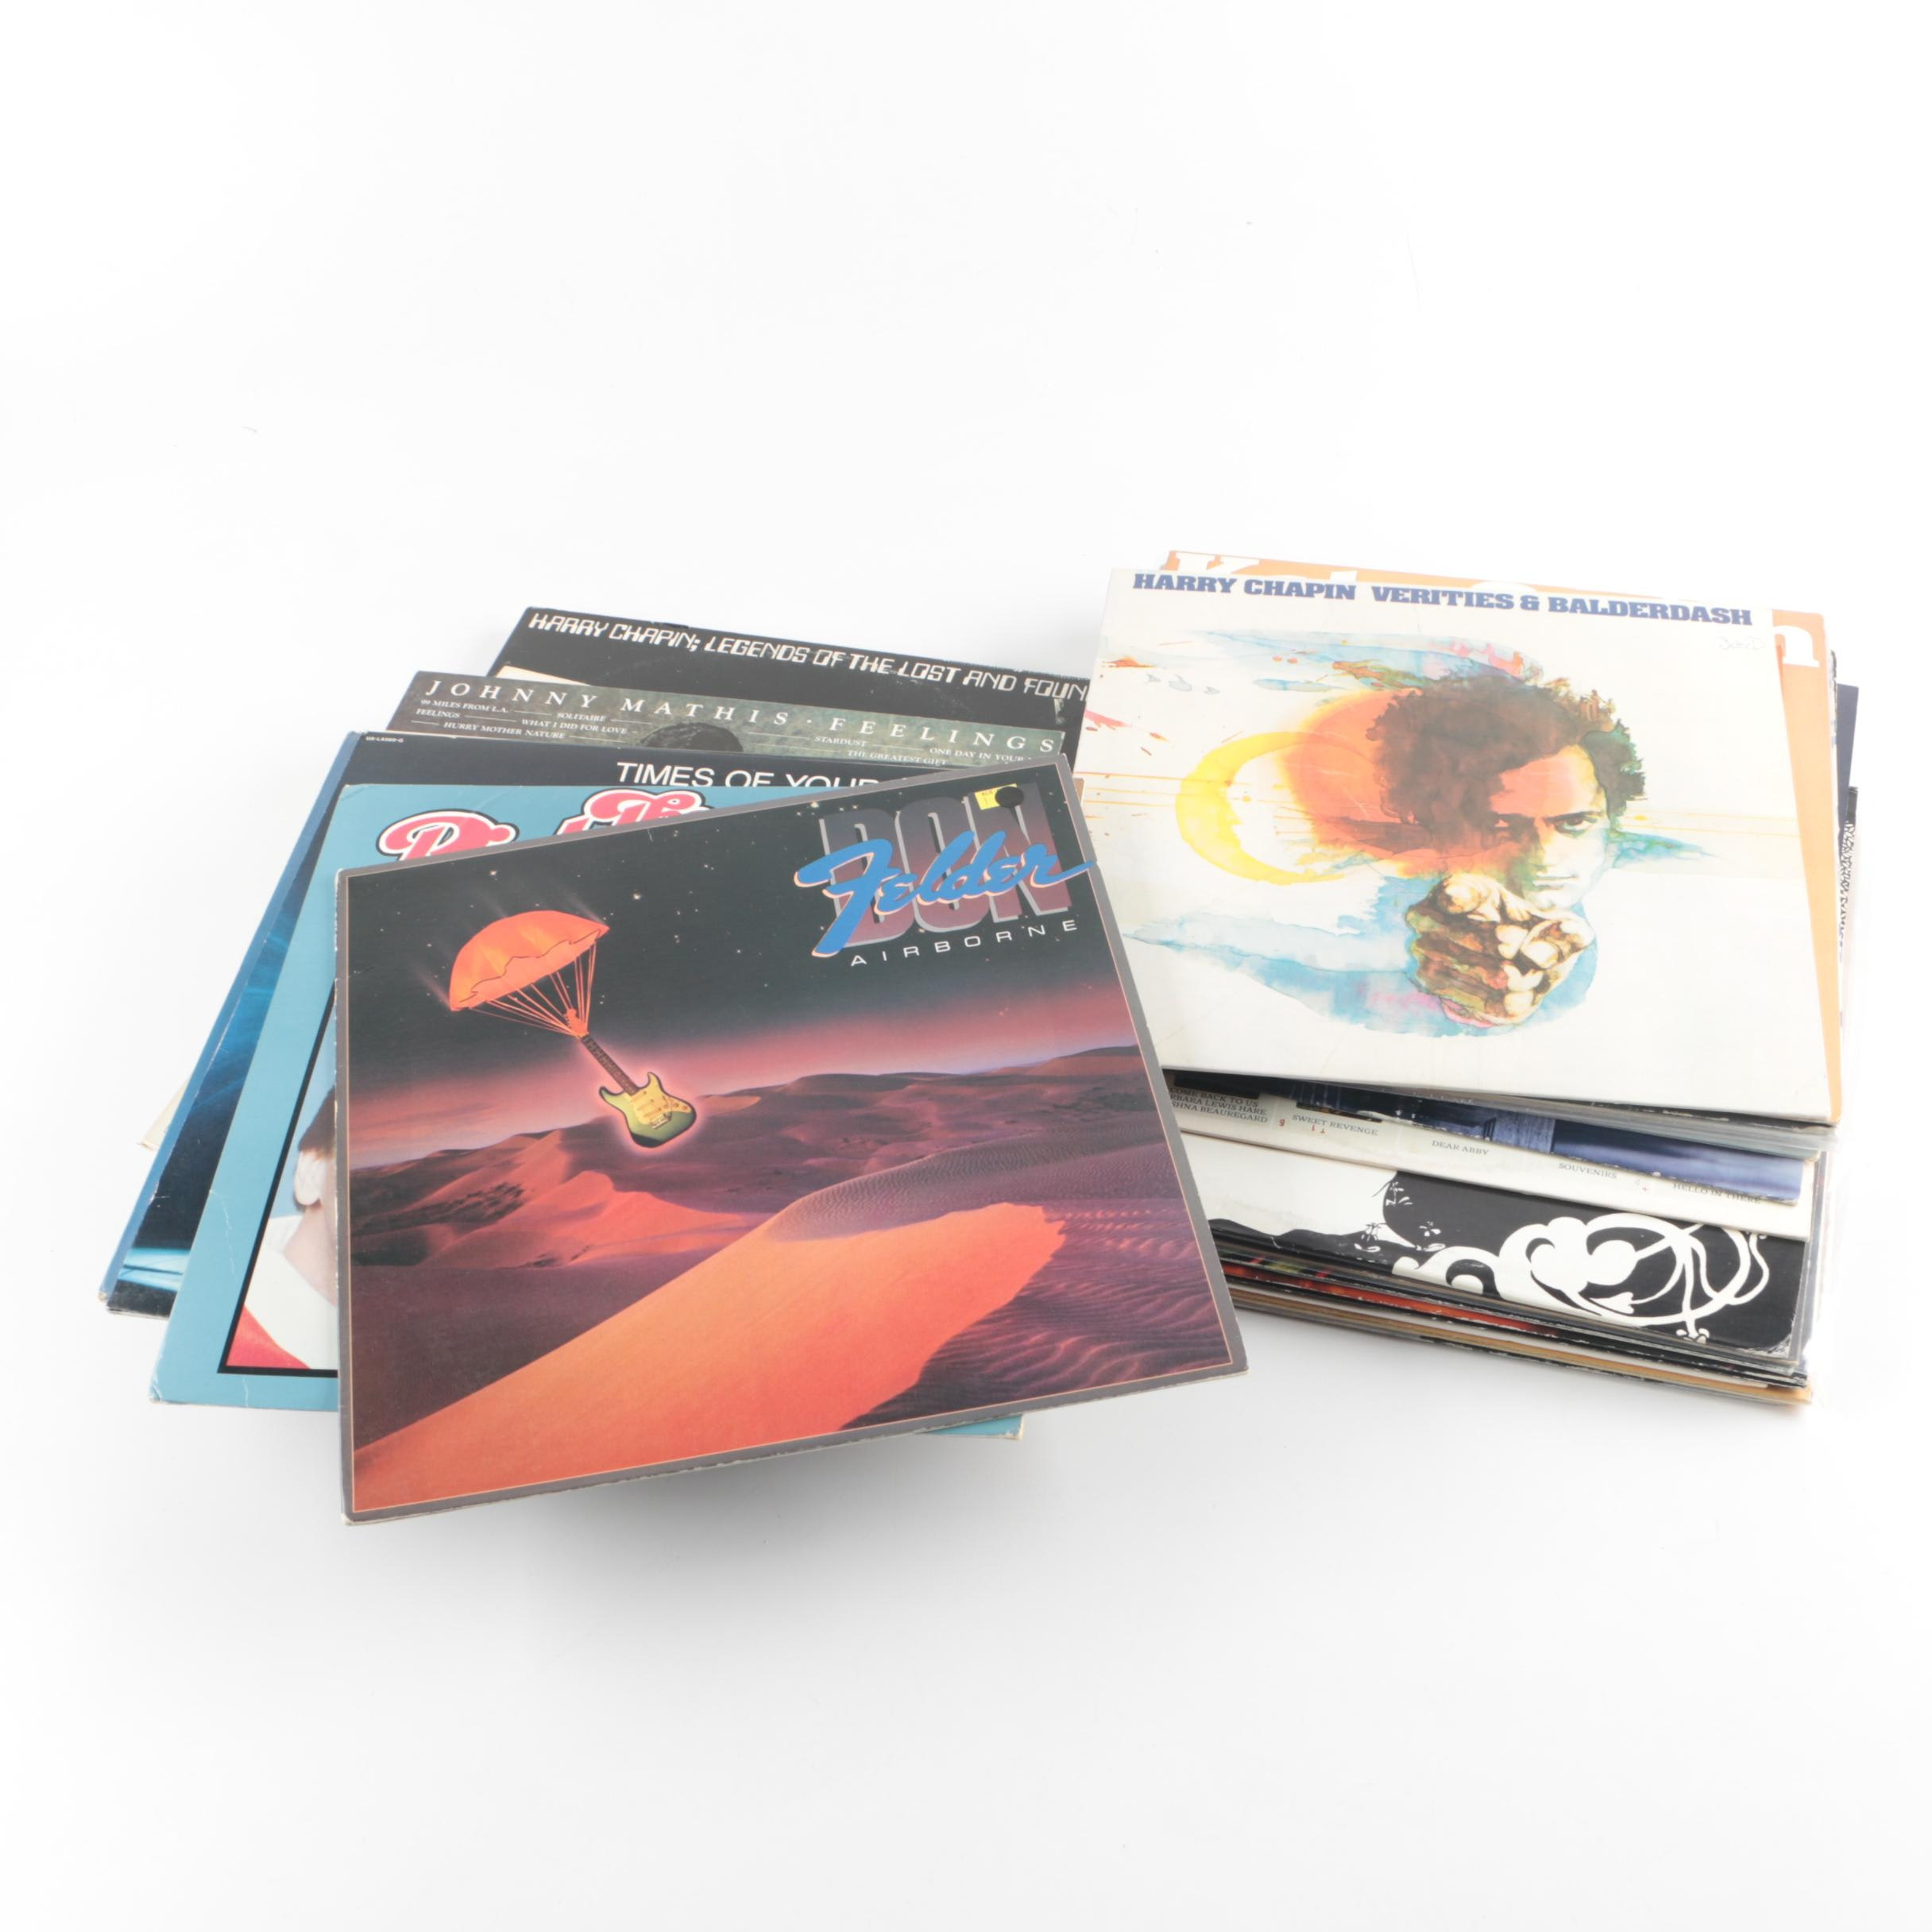 Vintage Songwriter, Pop and Rock Records Including John Prine and Procol Harum